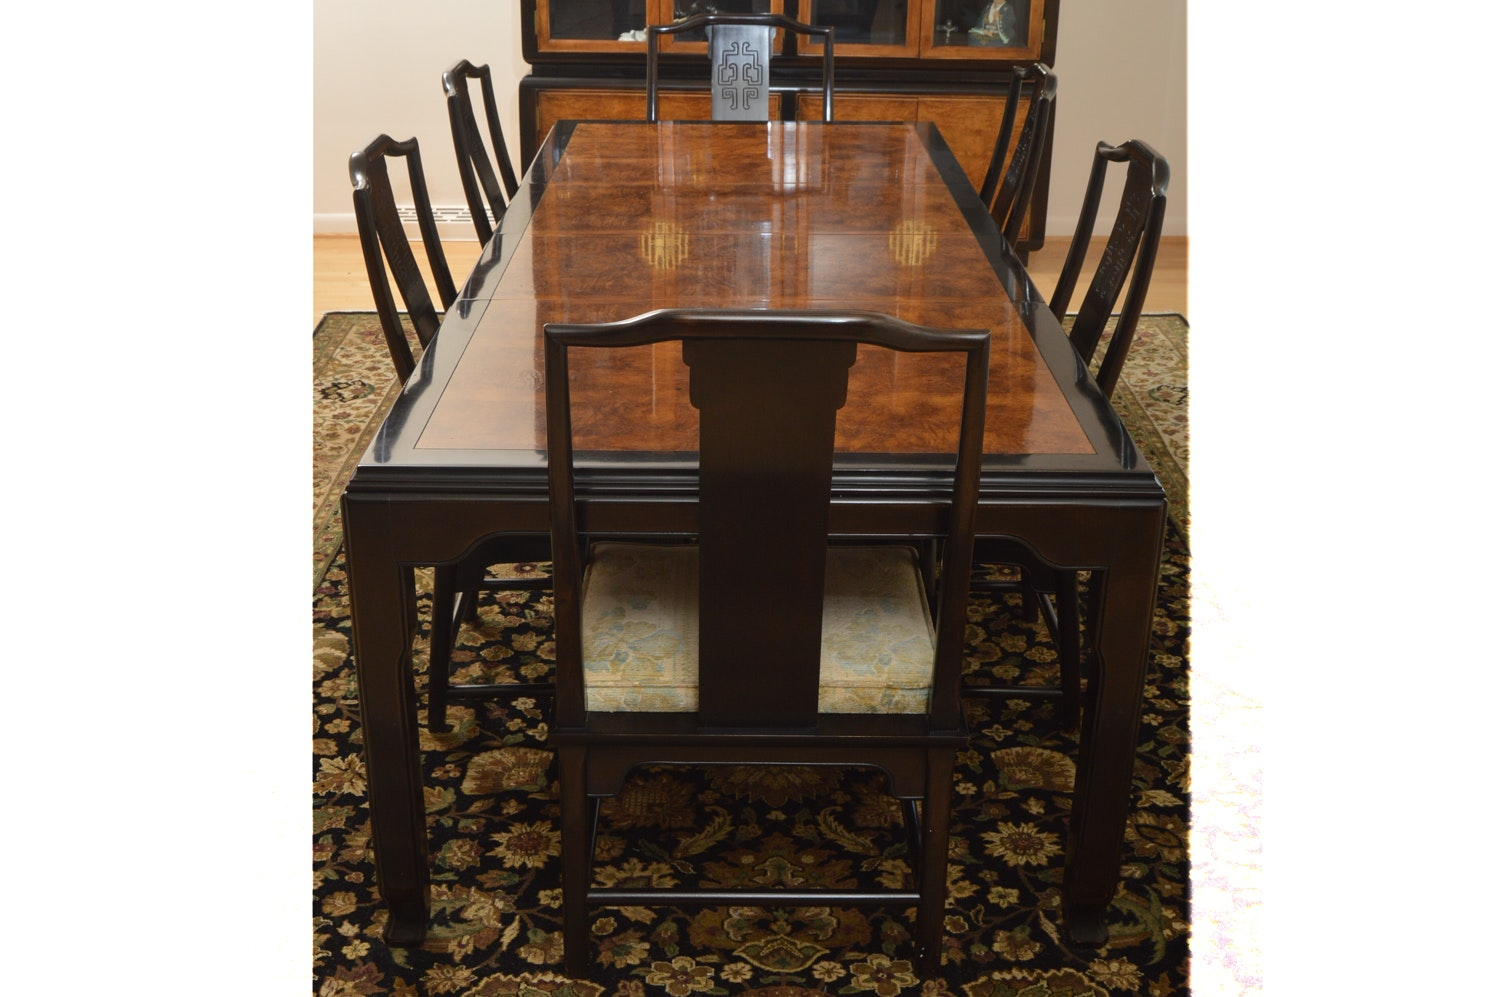 Chinese Inspired Dining Table and Chairs by Century Furniture